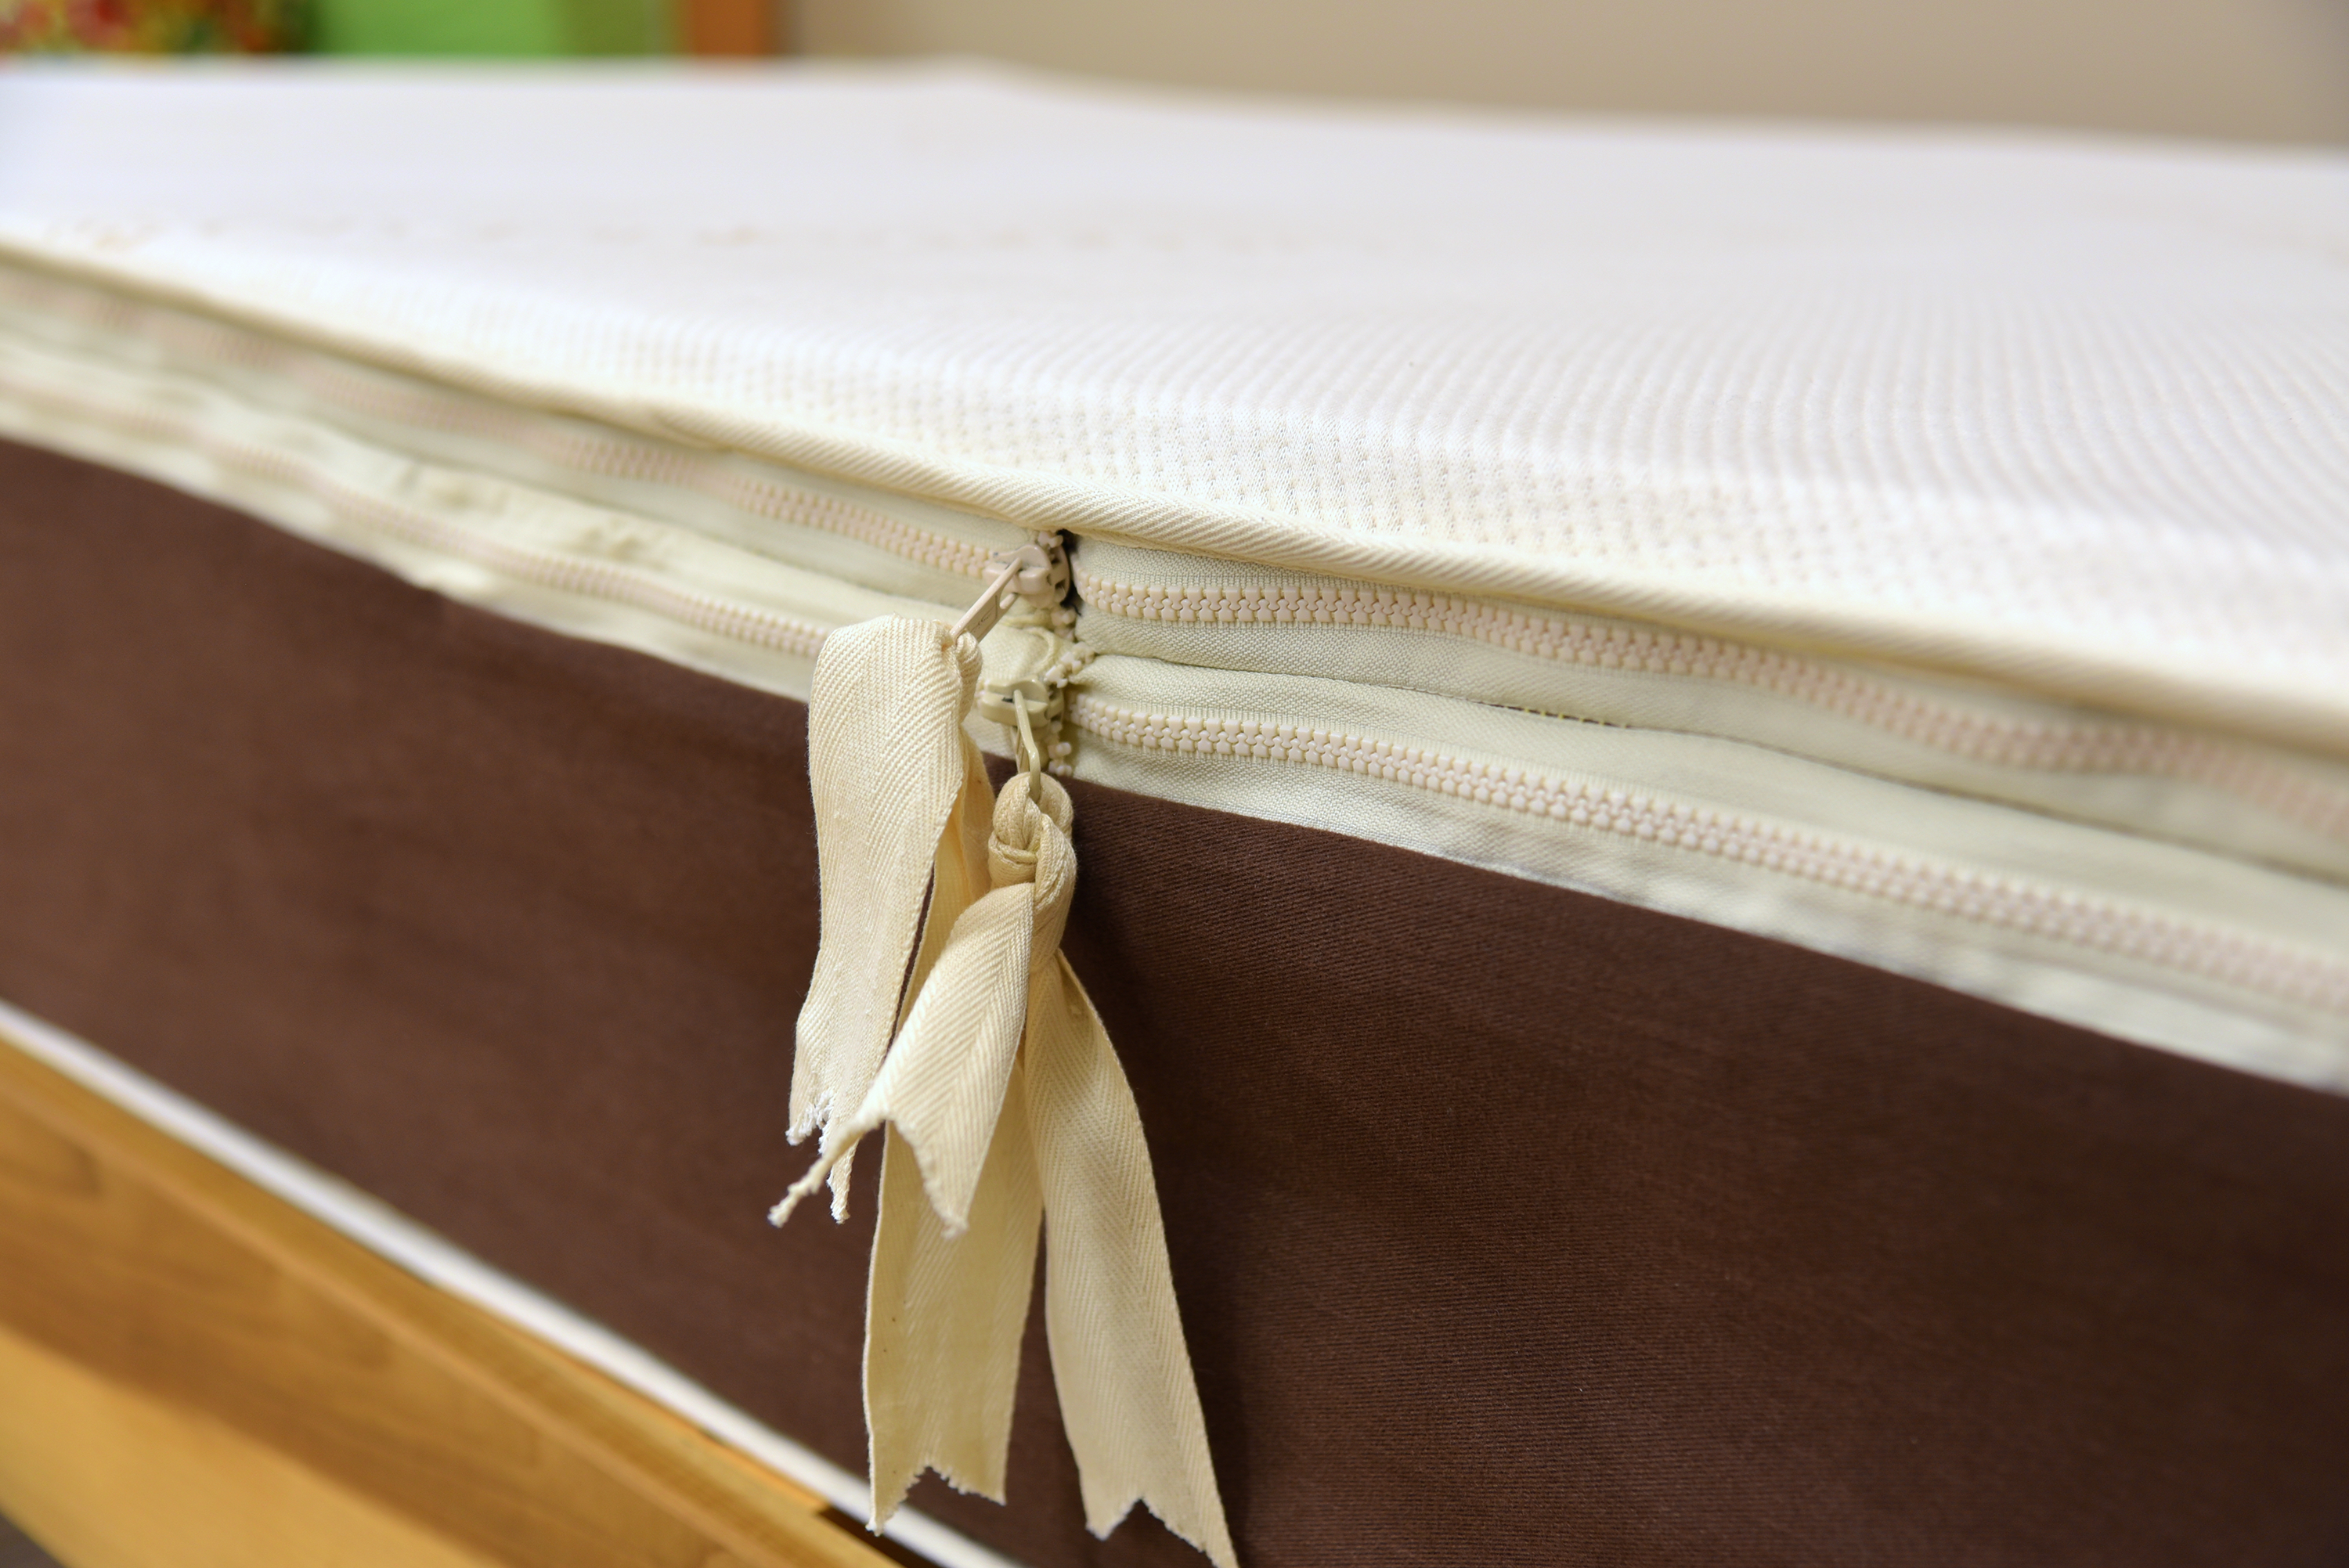 Organic Voyager 3-Layer Mattress, knit cover with expandable casing.